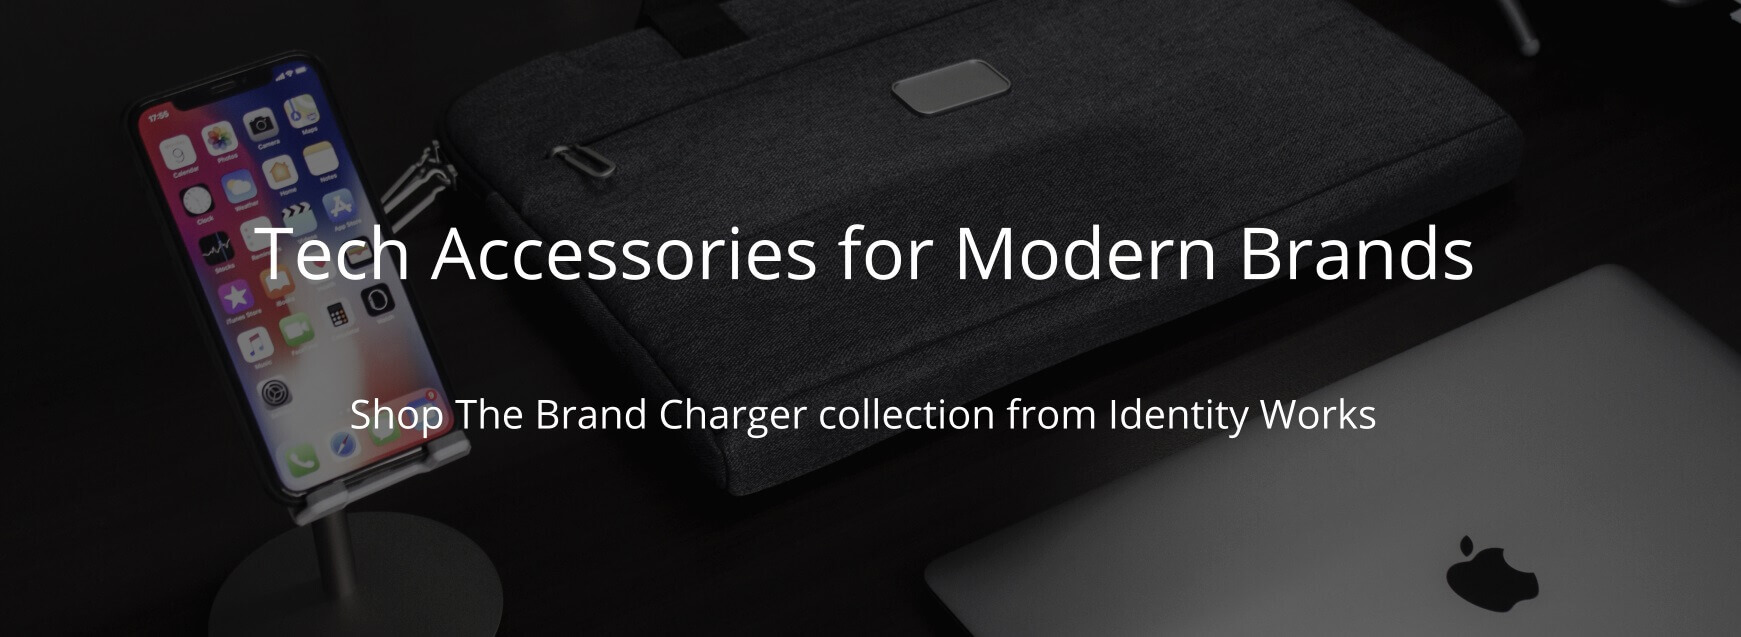 Tech Accessories for Modern Brands - The Brand Charger collection from Identity Works